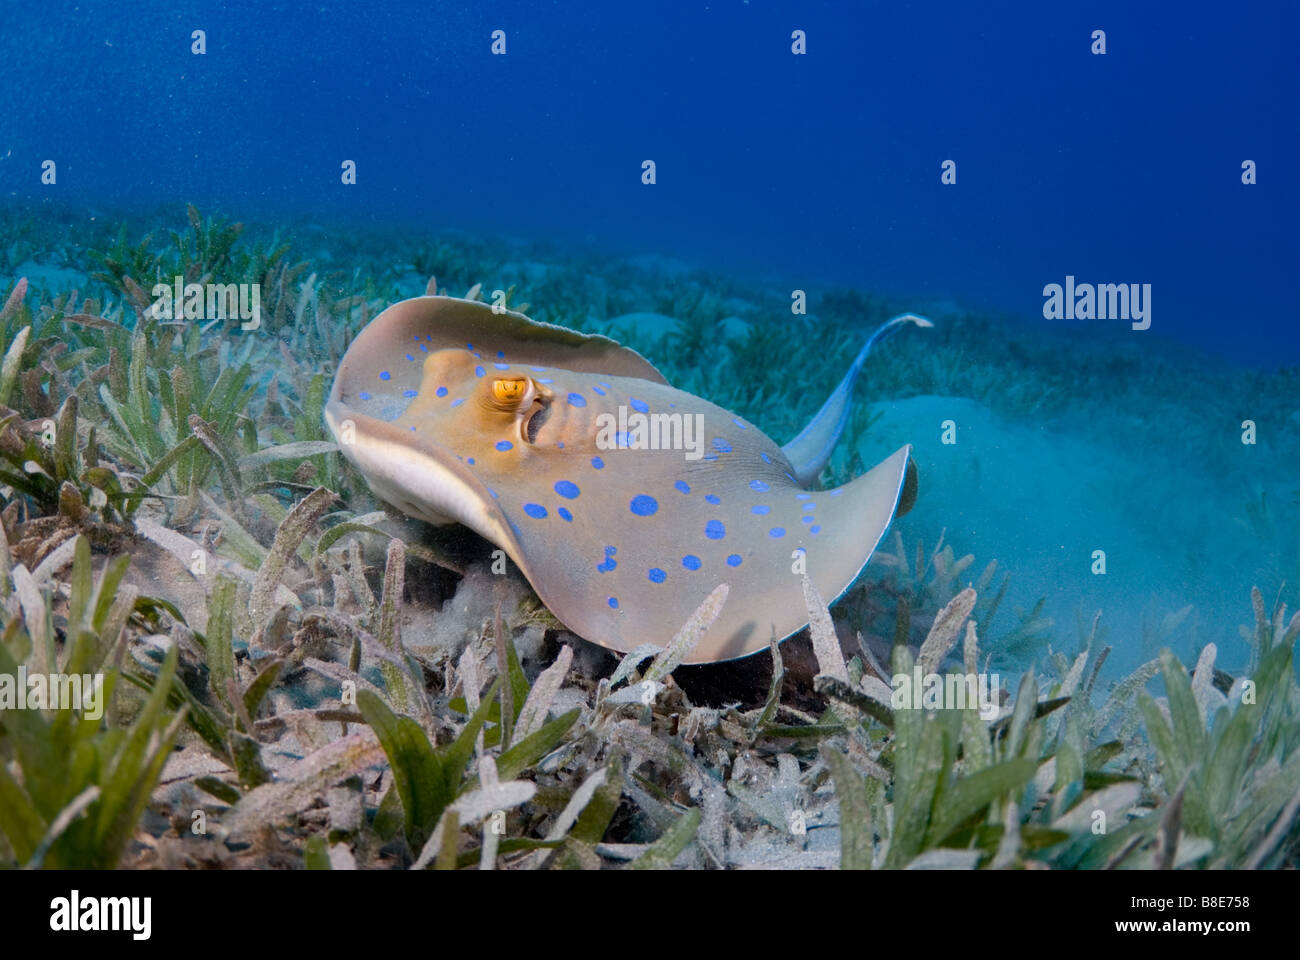 Sting Ray Stock Photos & Sting Ray Stock Images - Alamy